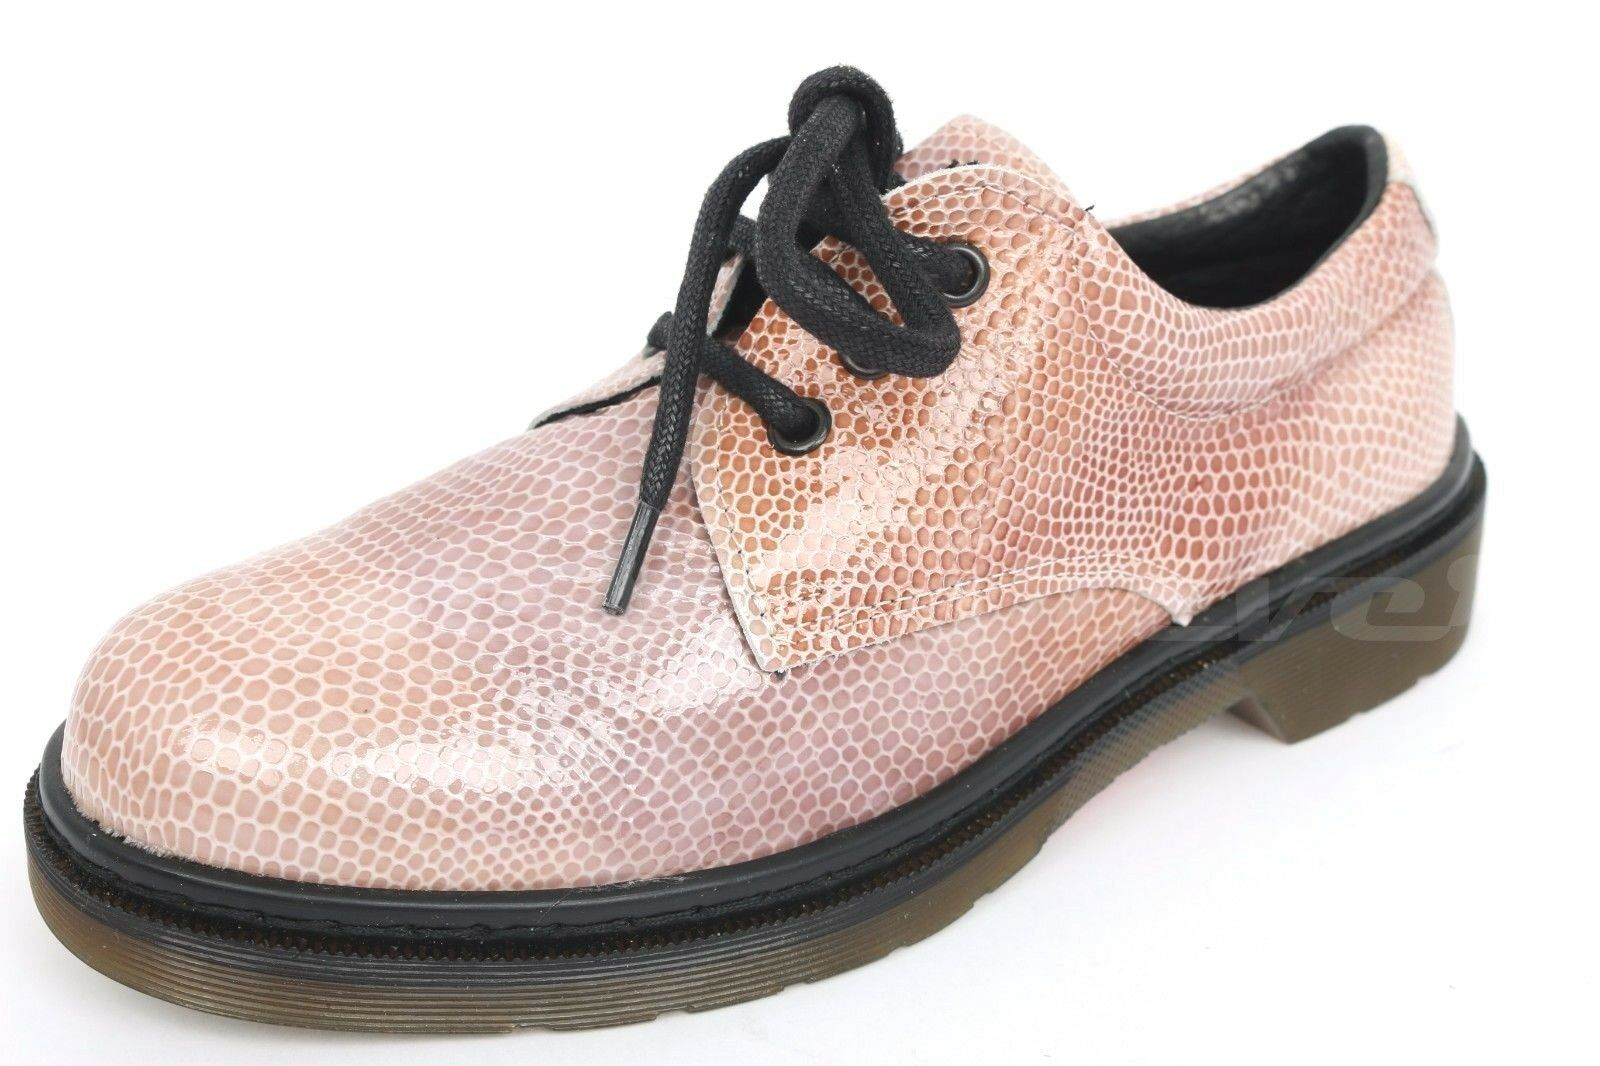 Donna TOPSHOP pink snake print pattern leather oxfords shoes sz. 38 NEW!